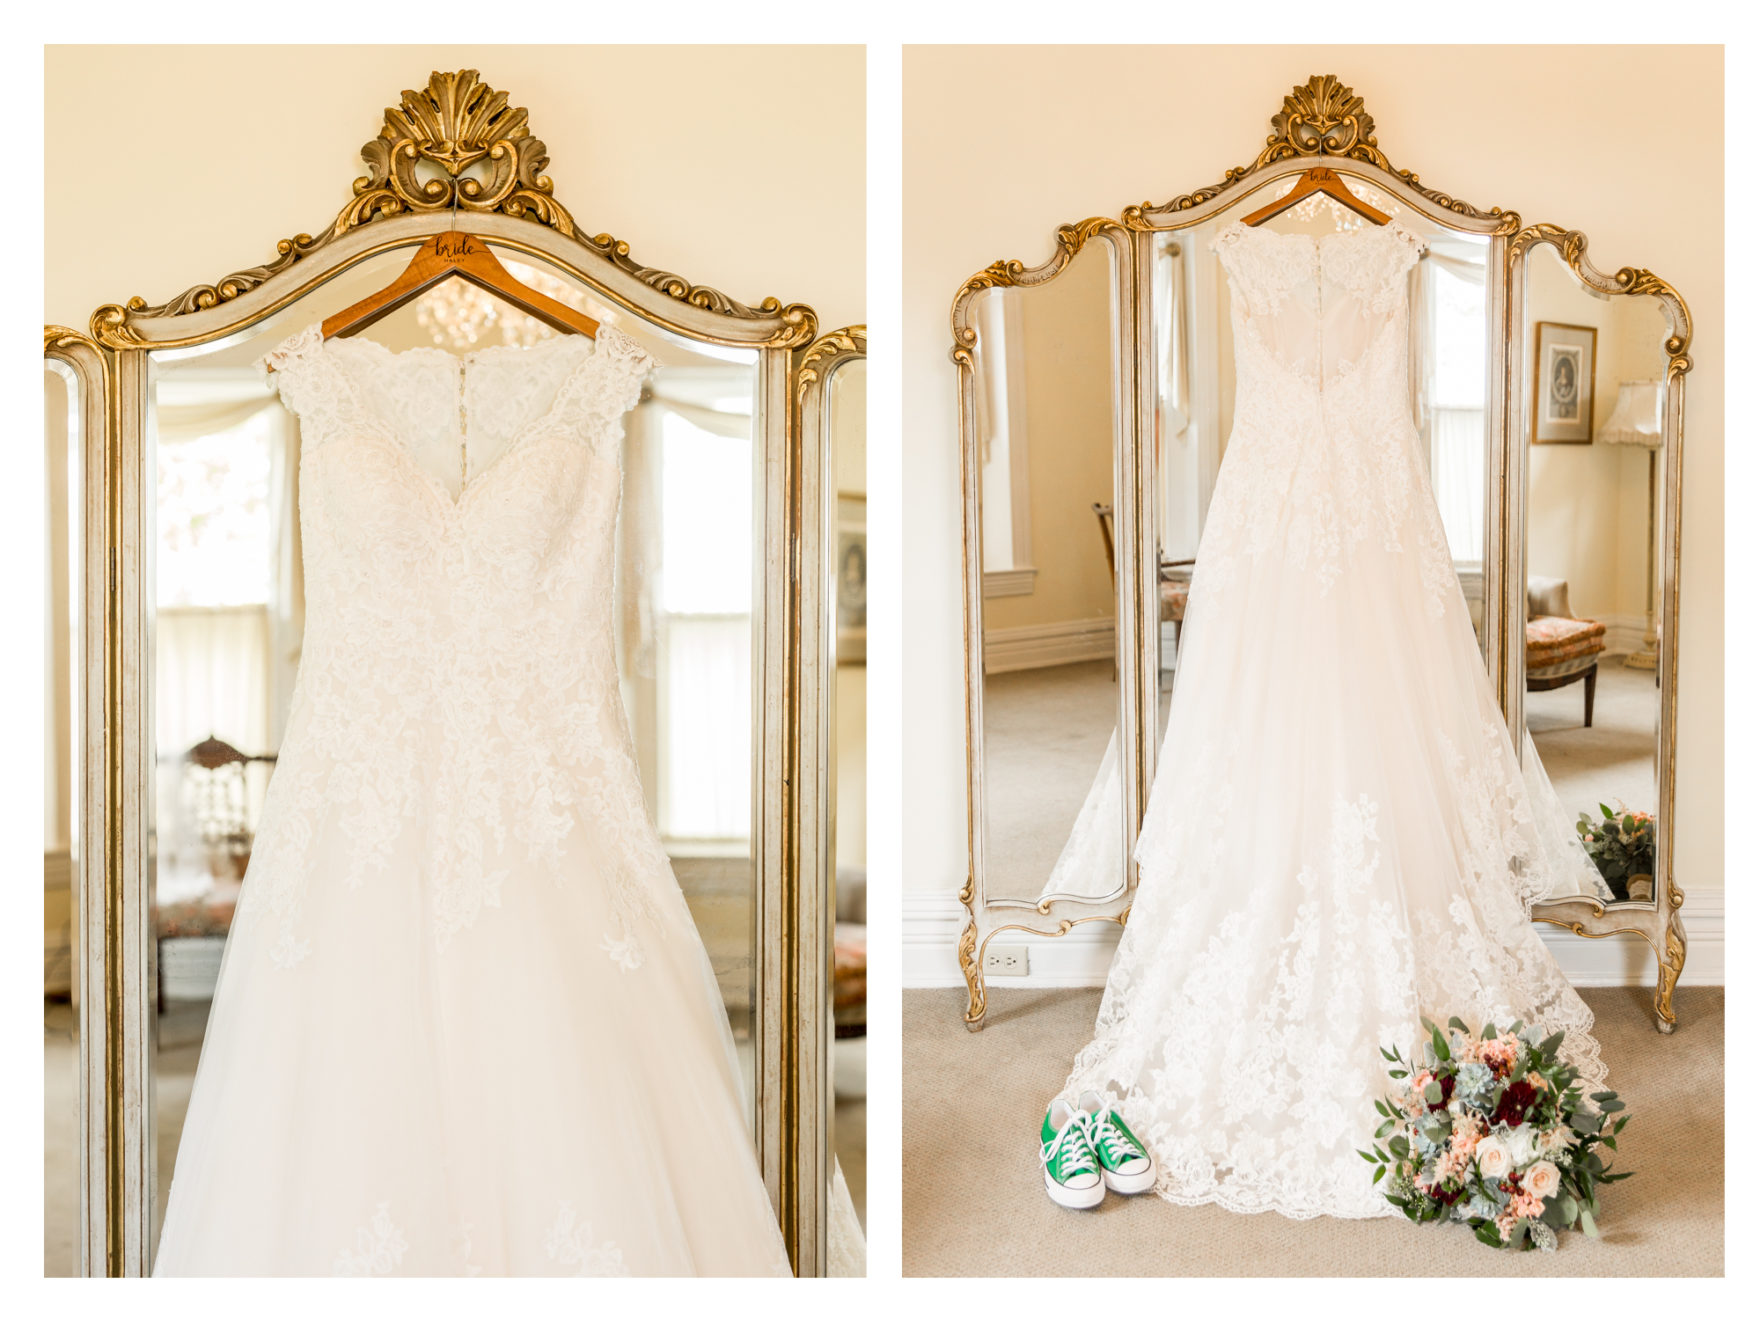 Frederick Wedding Photographer, Frederick Wedding, Ceresville Mansion Wedding, Fall Wedding, Burgundy Wedding, Outdoor Wedding, Military Wedding, Marine Wedding,  Green Converse, Green Wedding Shoes